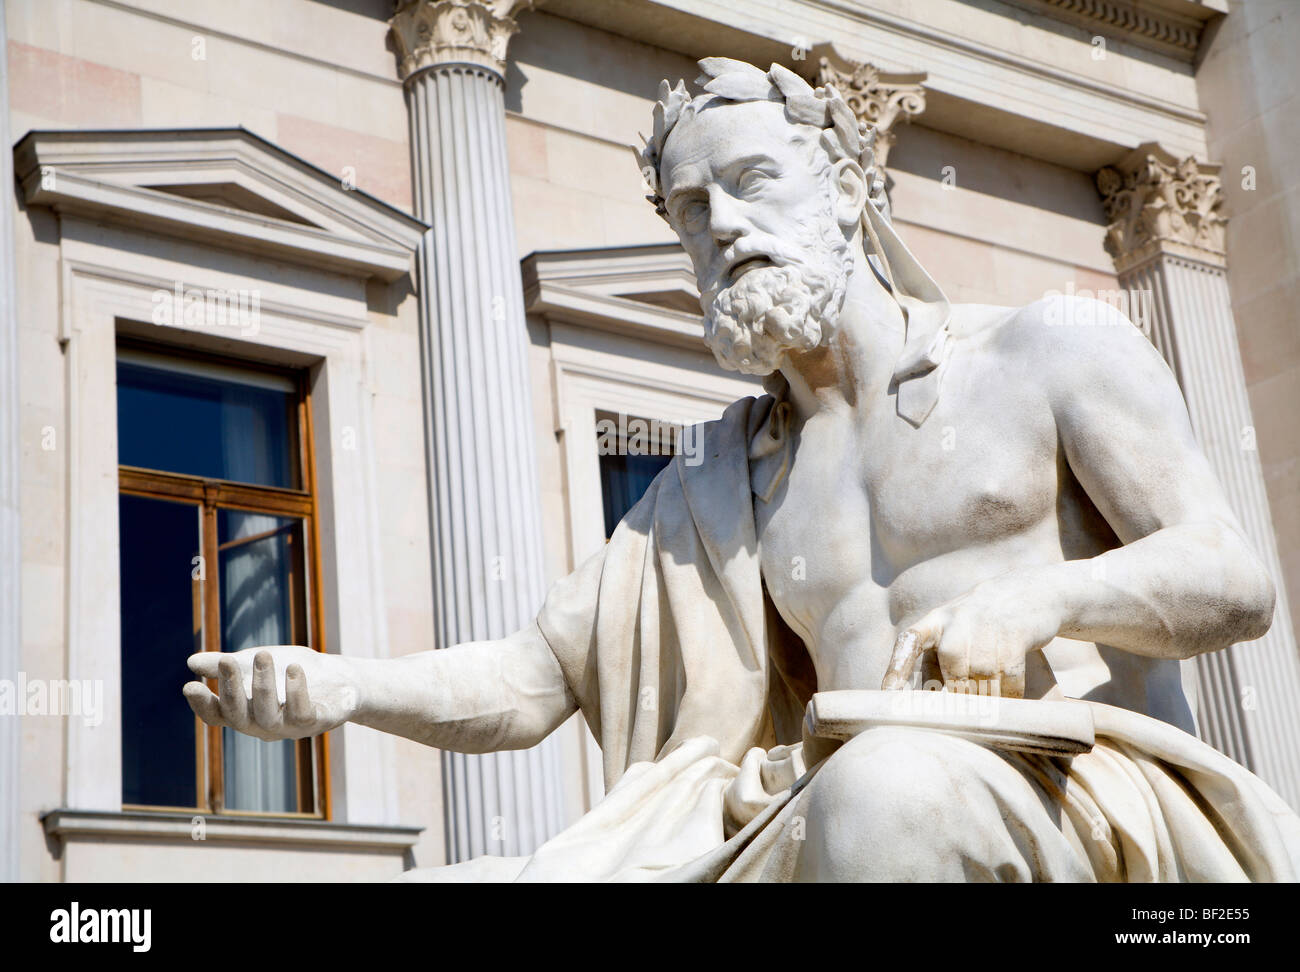 Vienna - philosopher statue for the Parliament - Xenophanes - Stock Image